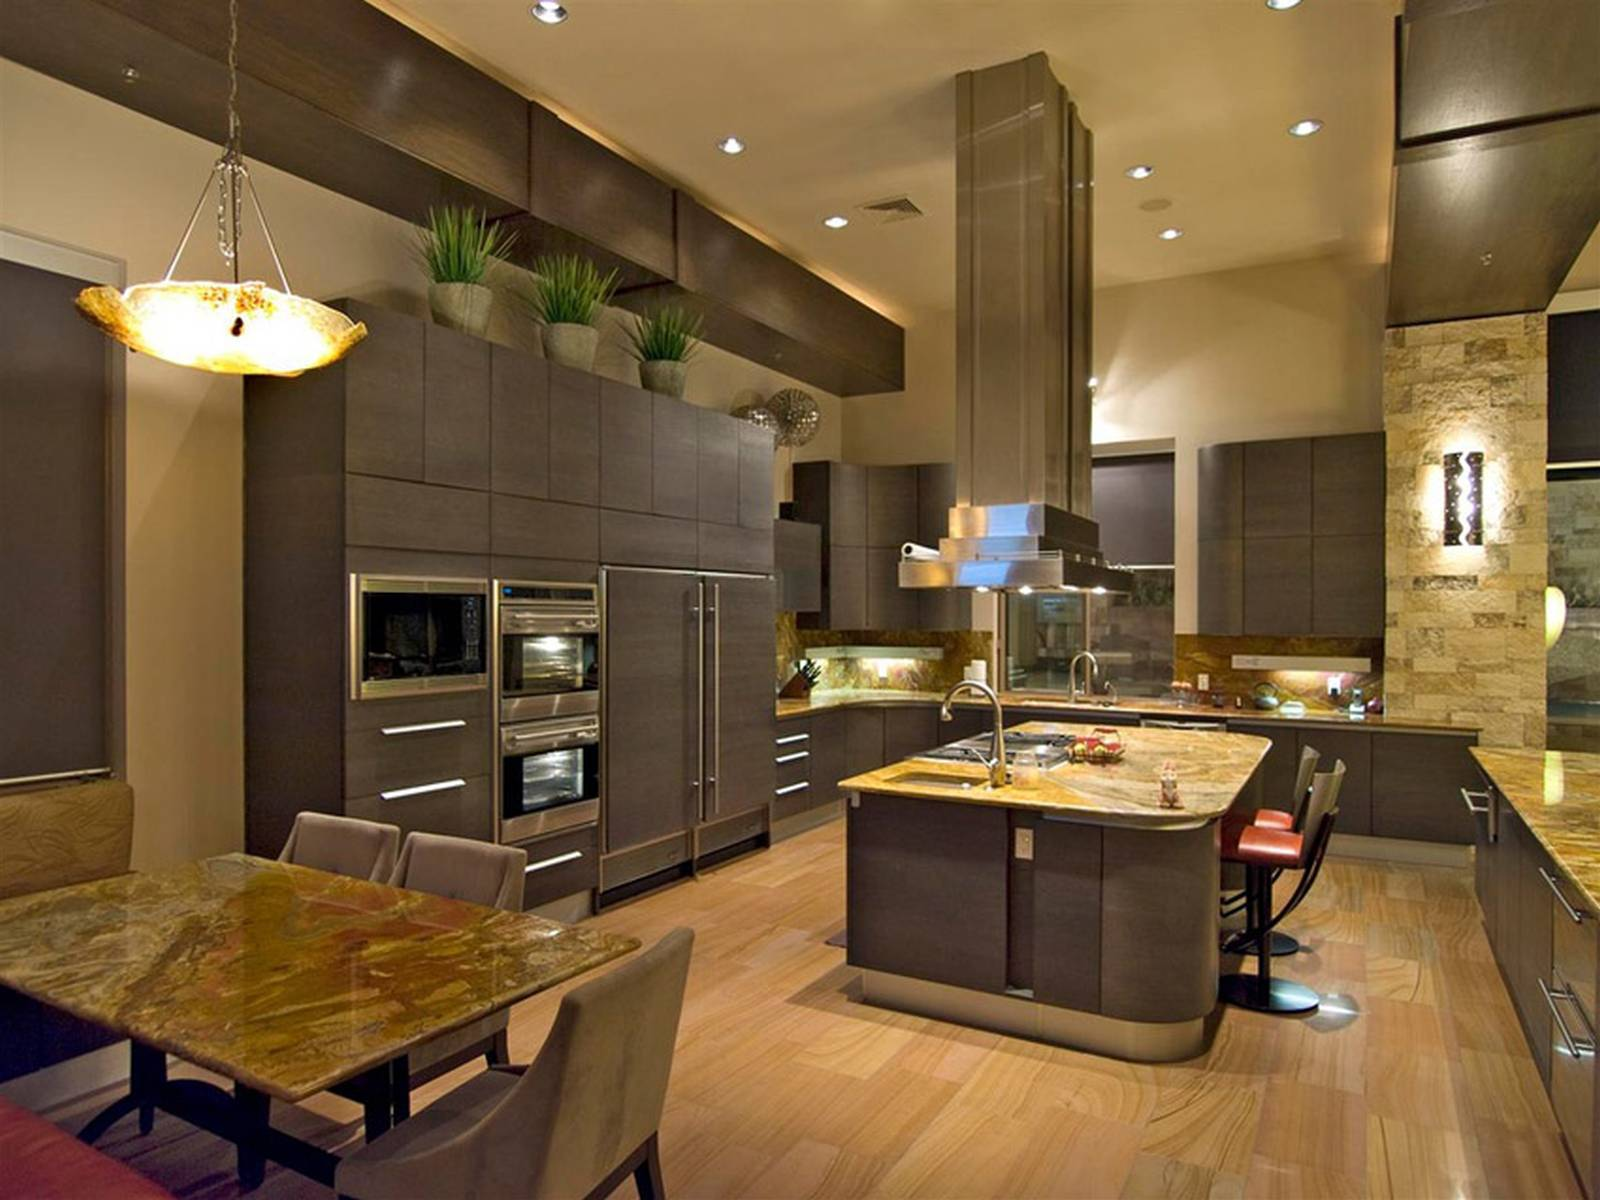 Contemporary Kitchen With High Ceilings Light Wood Floors And Dark Cabinets